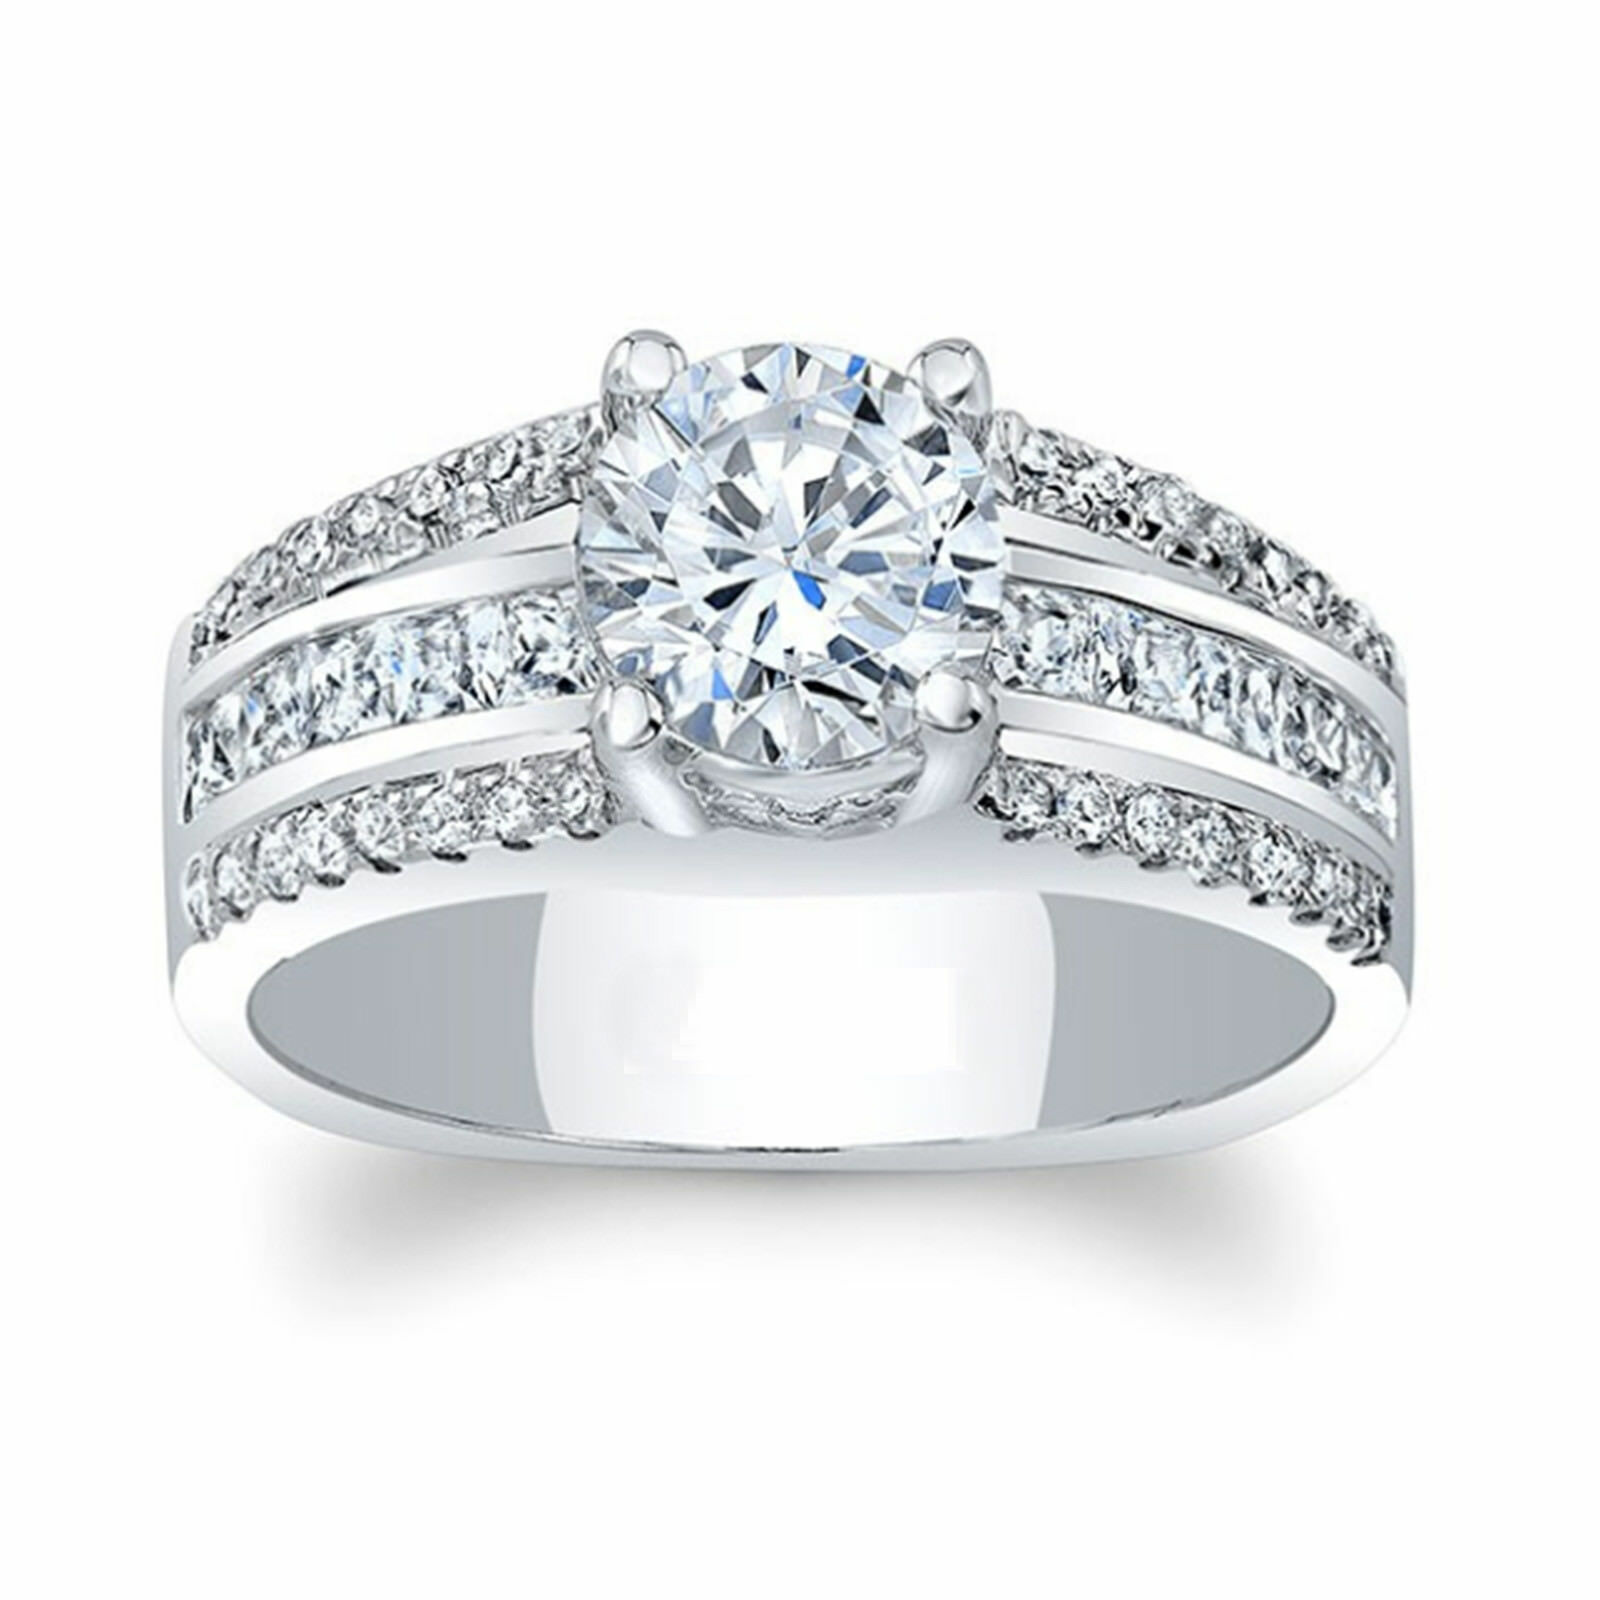 f562e3b2a5622 Accents with Solitaire Cut Round Ct 1.41 Diamond gold 7 6 5 Size ...